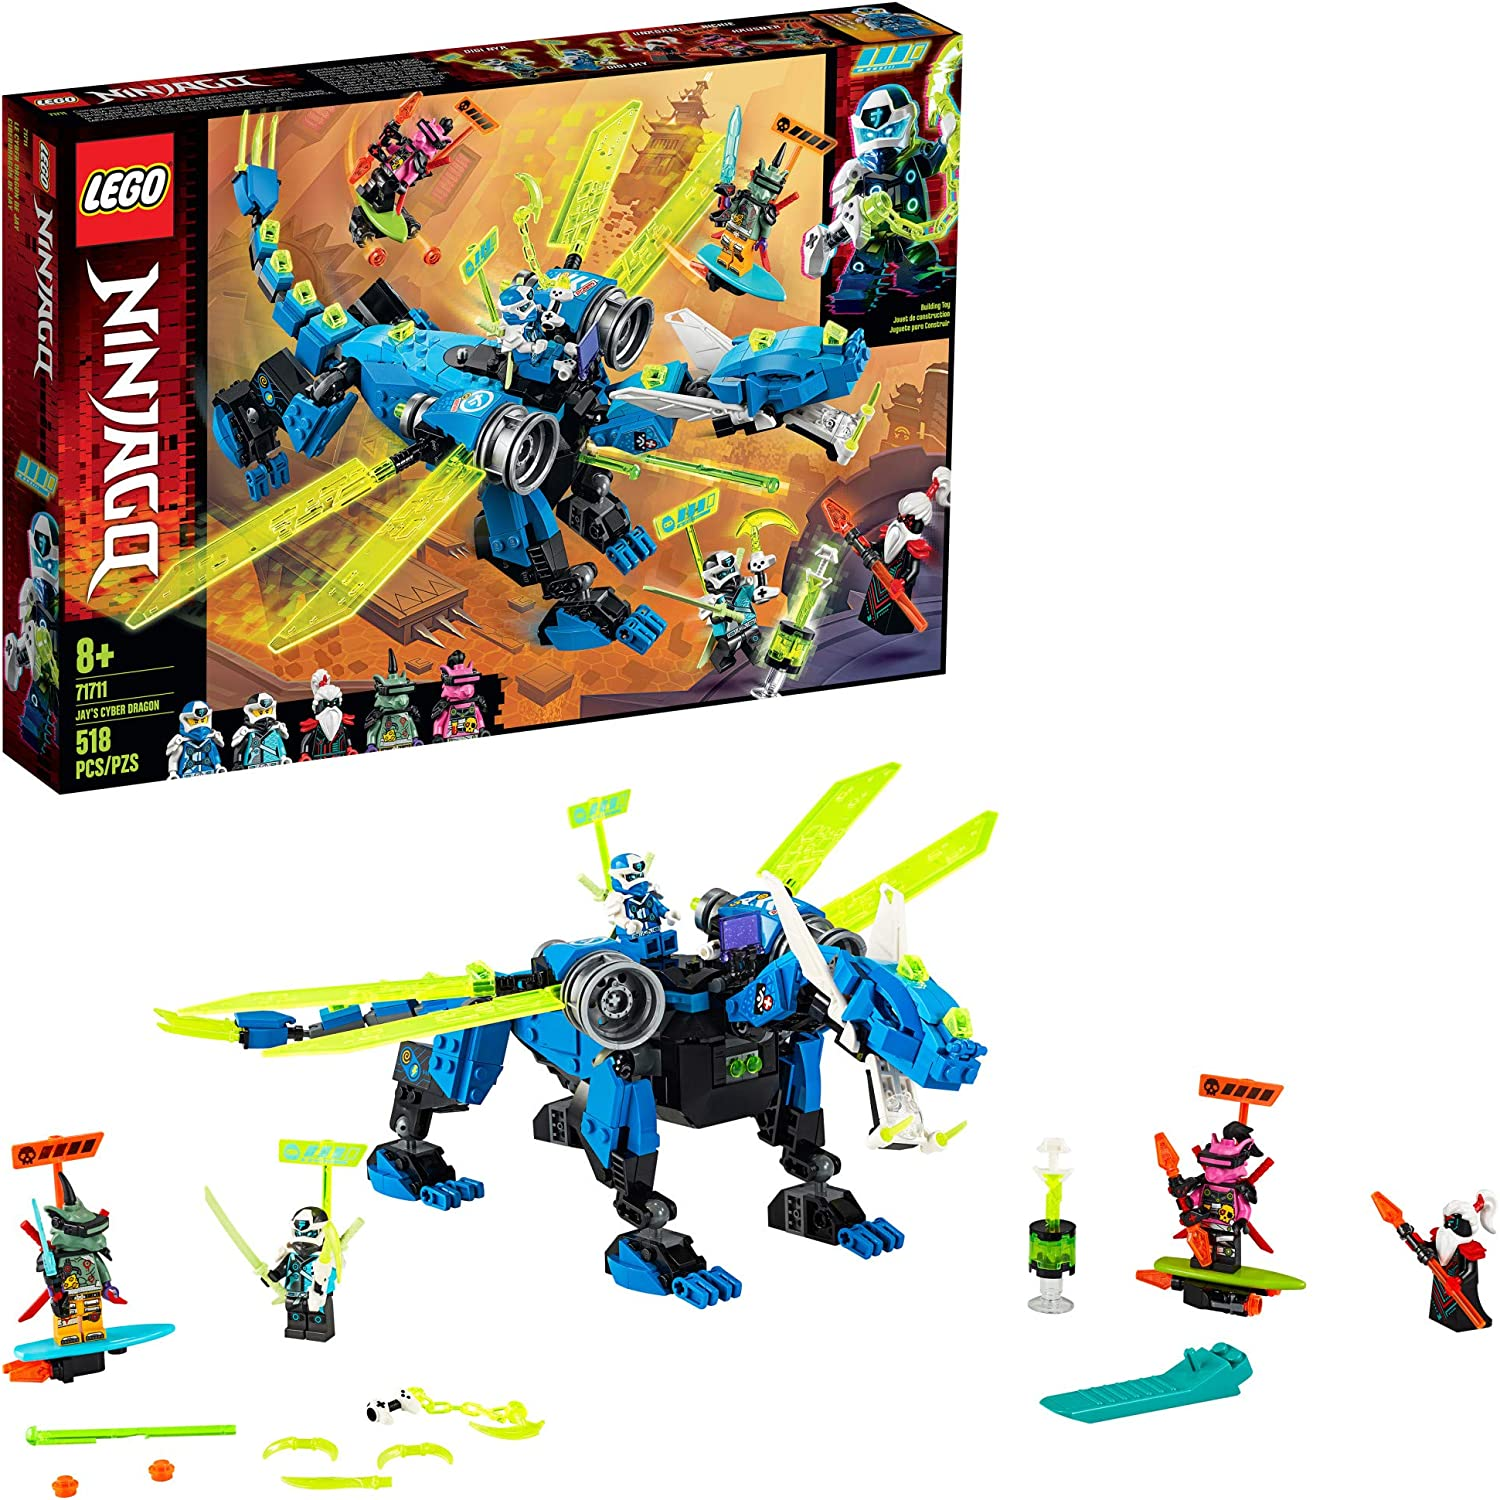 LEGO NINJAGO Jay's Cyber Dragon 71711 Ninja Action Toy Building Kit, New 2020 (518 Pieces)